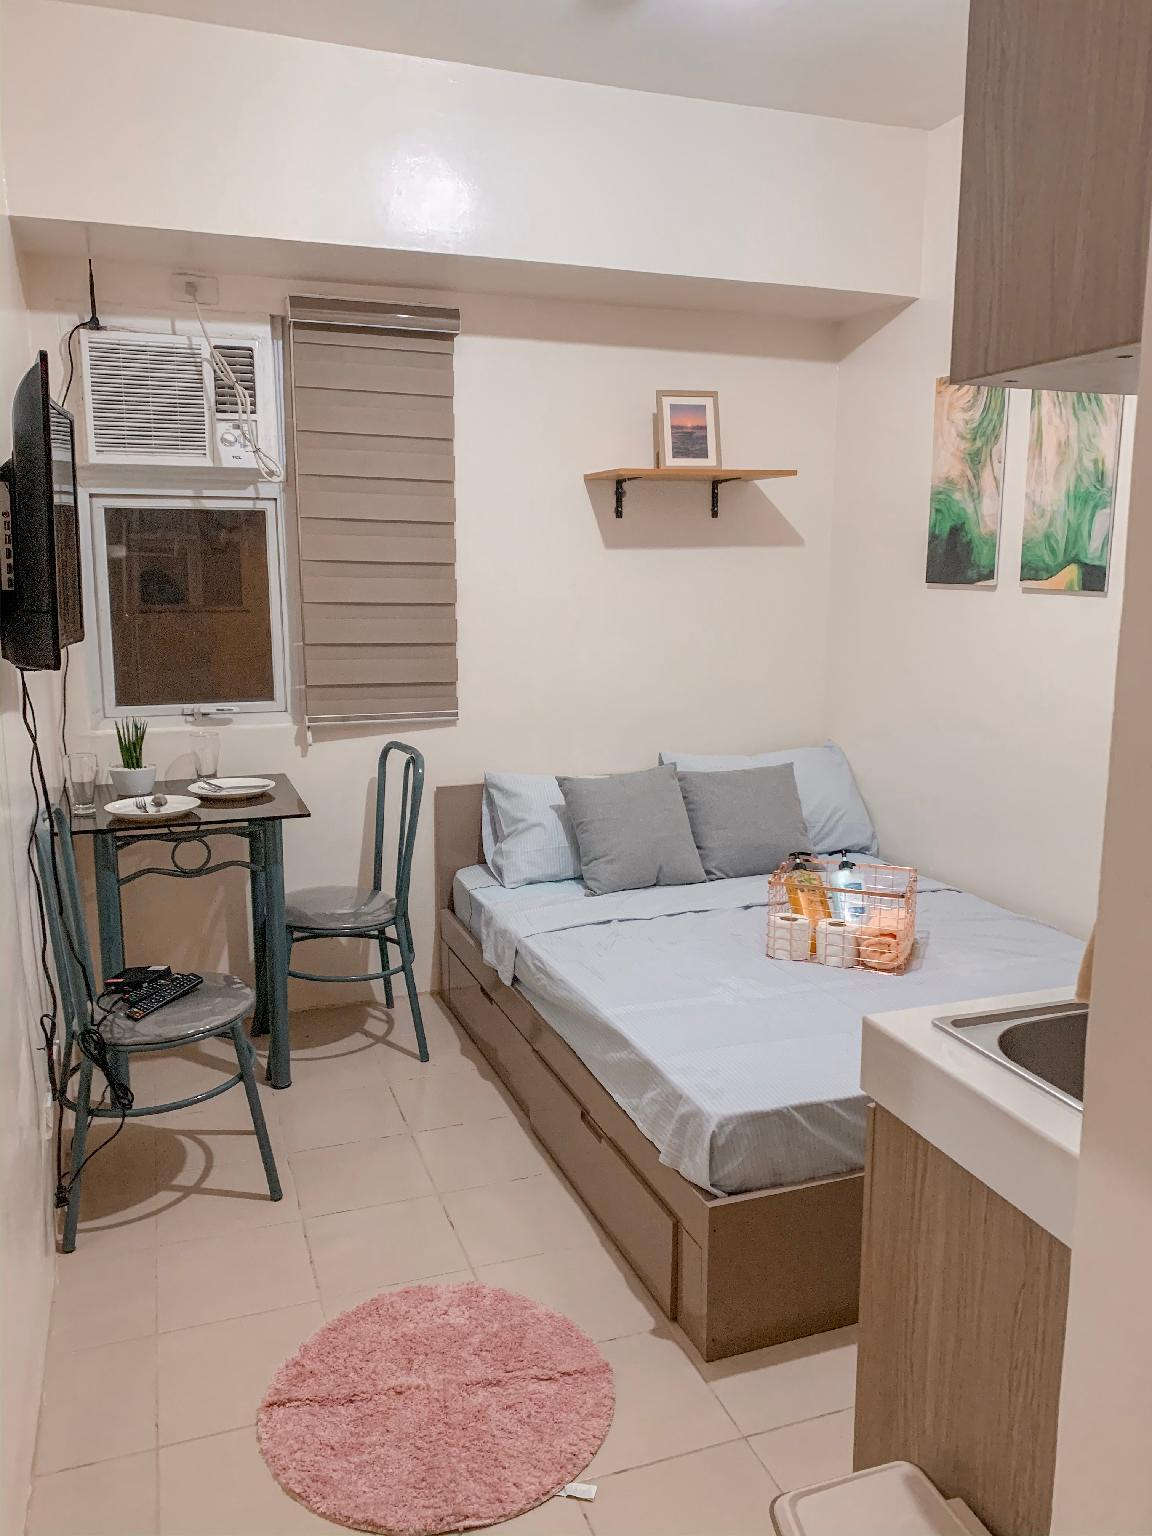 CleanandComfy Studio In Mandaluyong Near SM Megamall